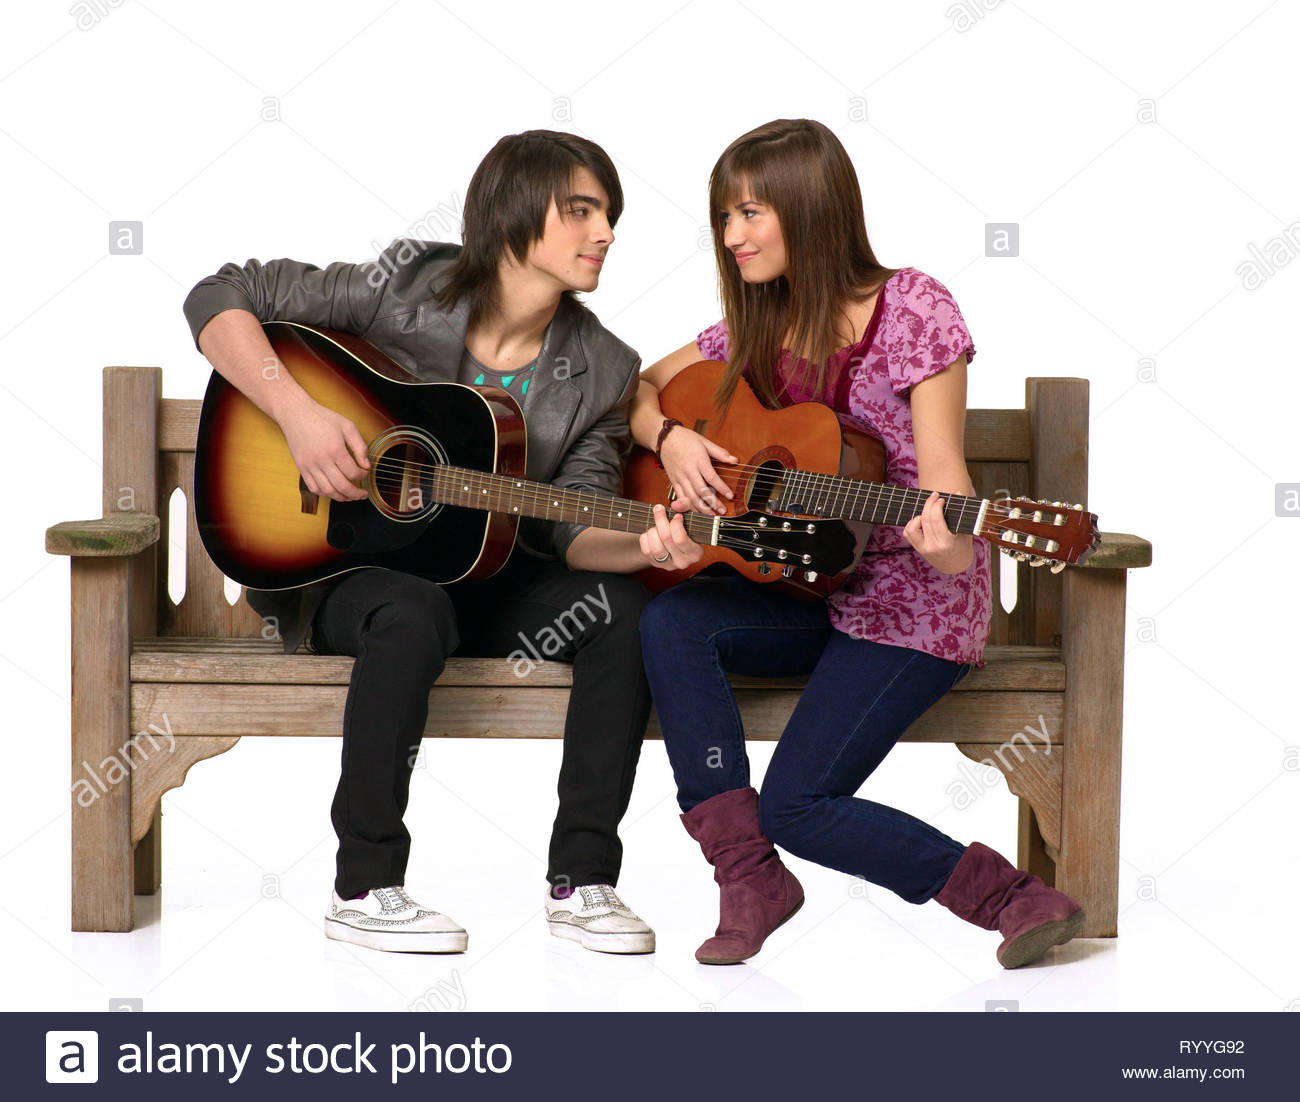 JONAS,LOVATO, CAMP ROCK, 2008 - Stock Image